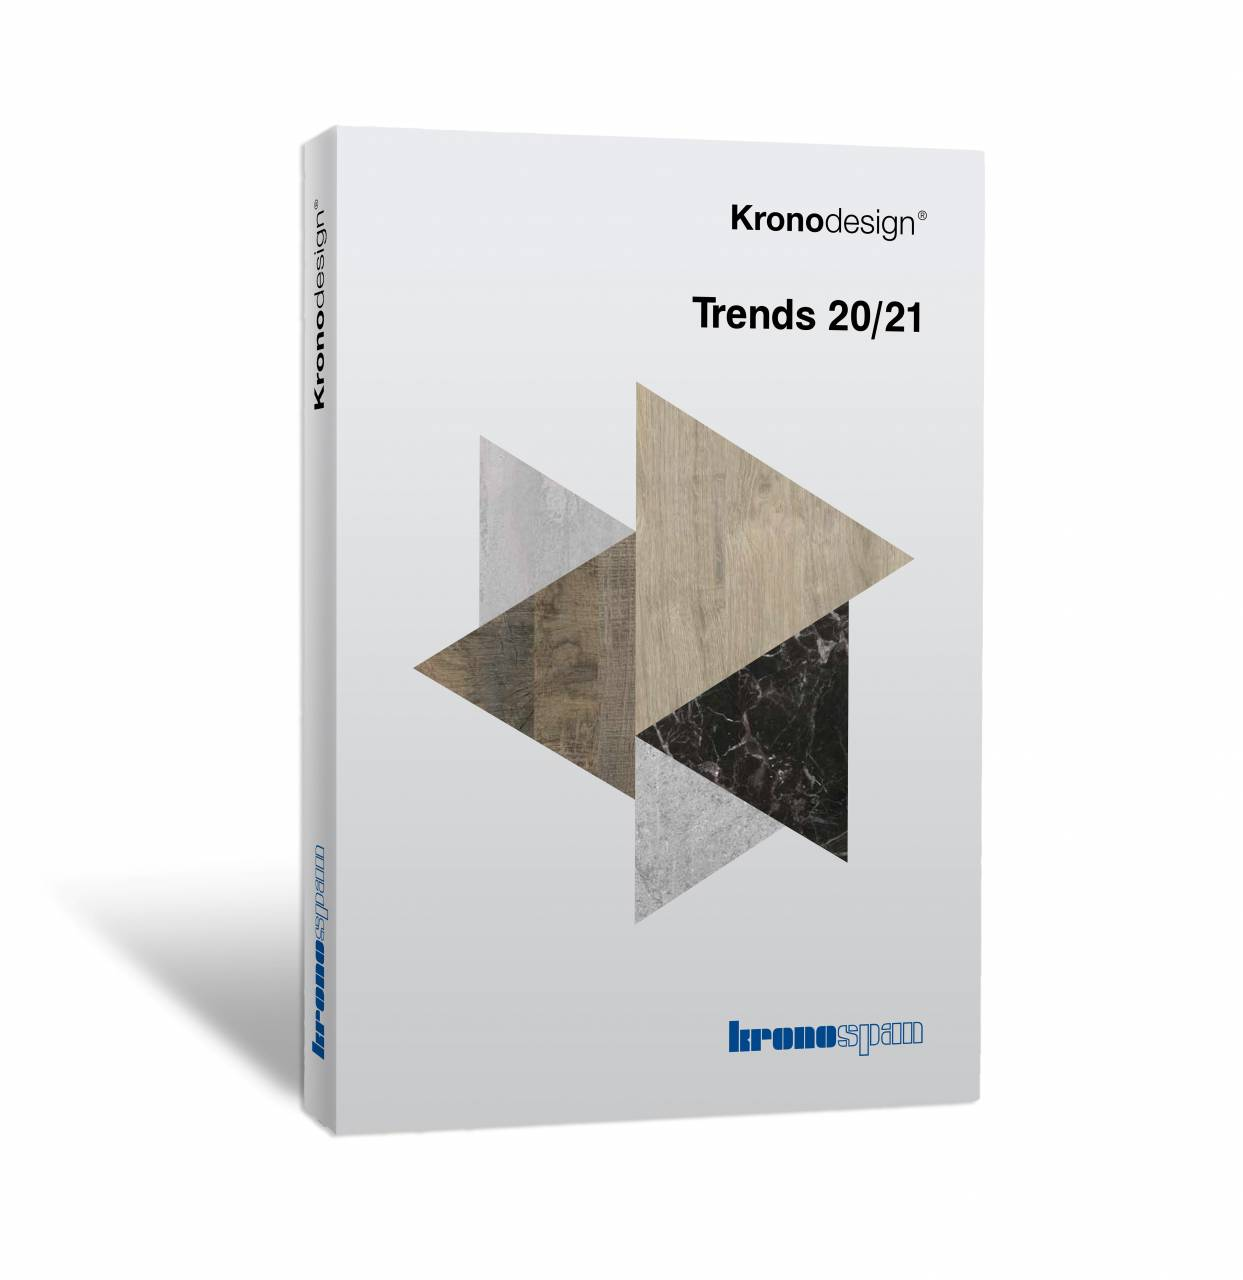 Kronodesign® Trends 20/21 Decor Book